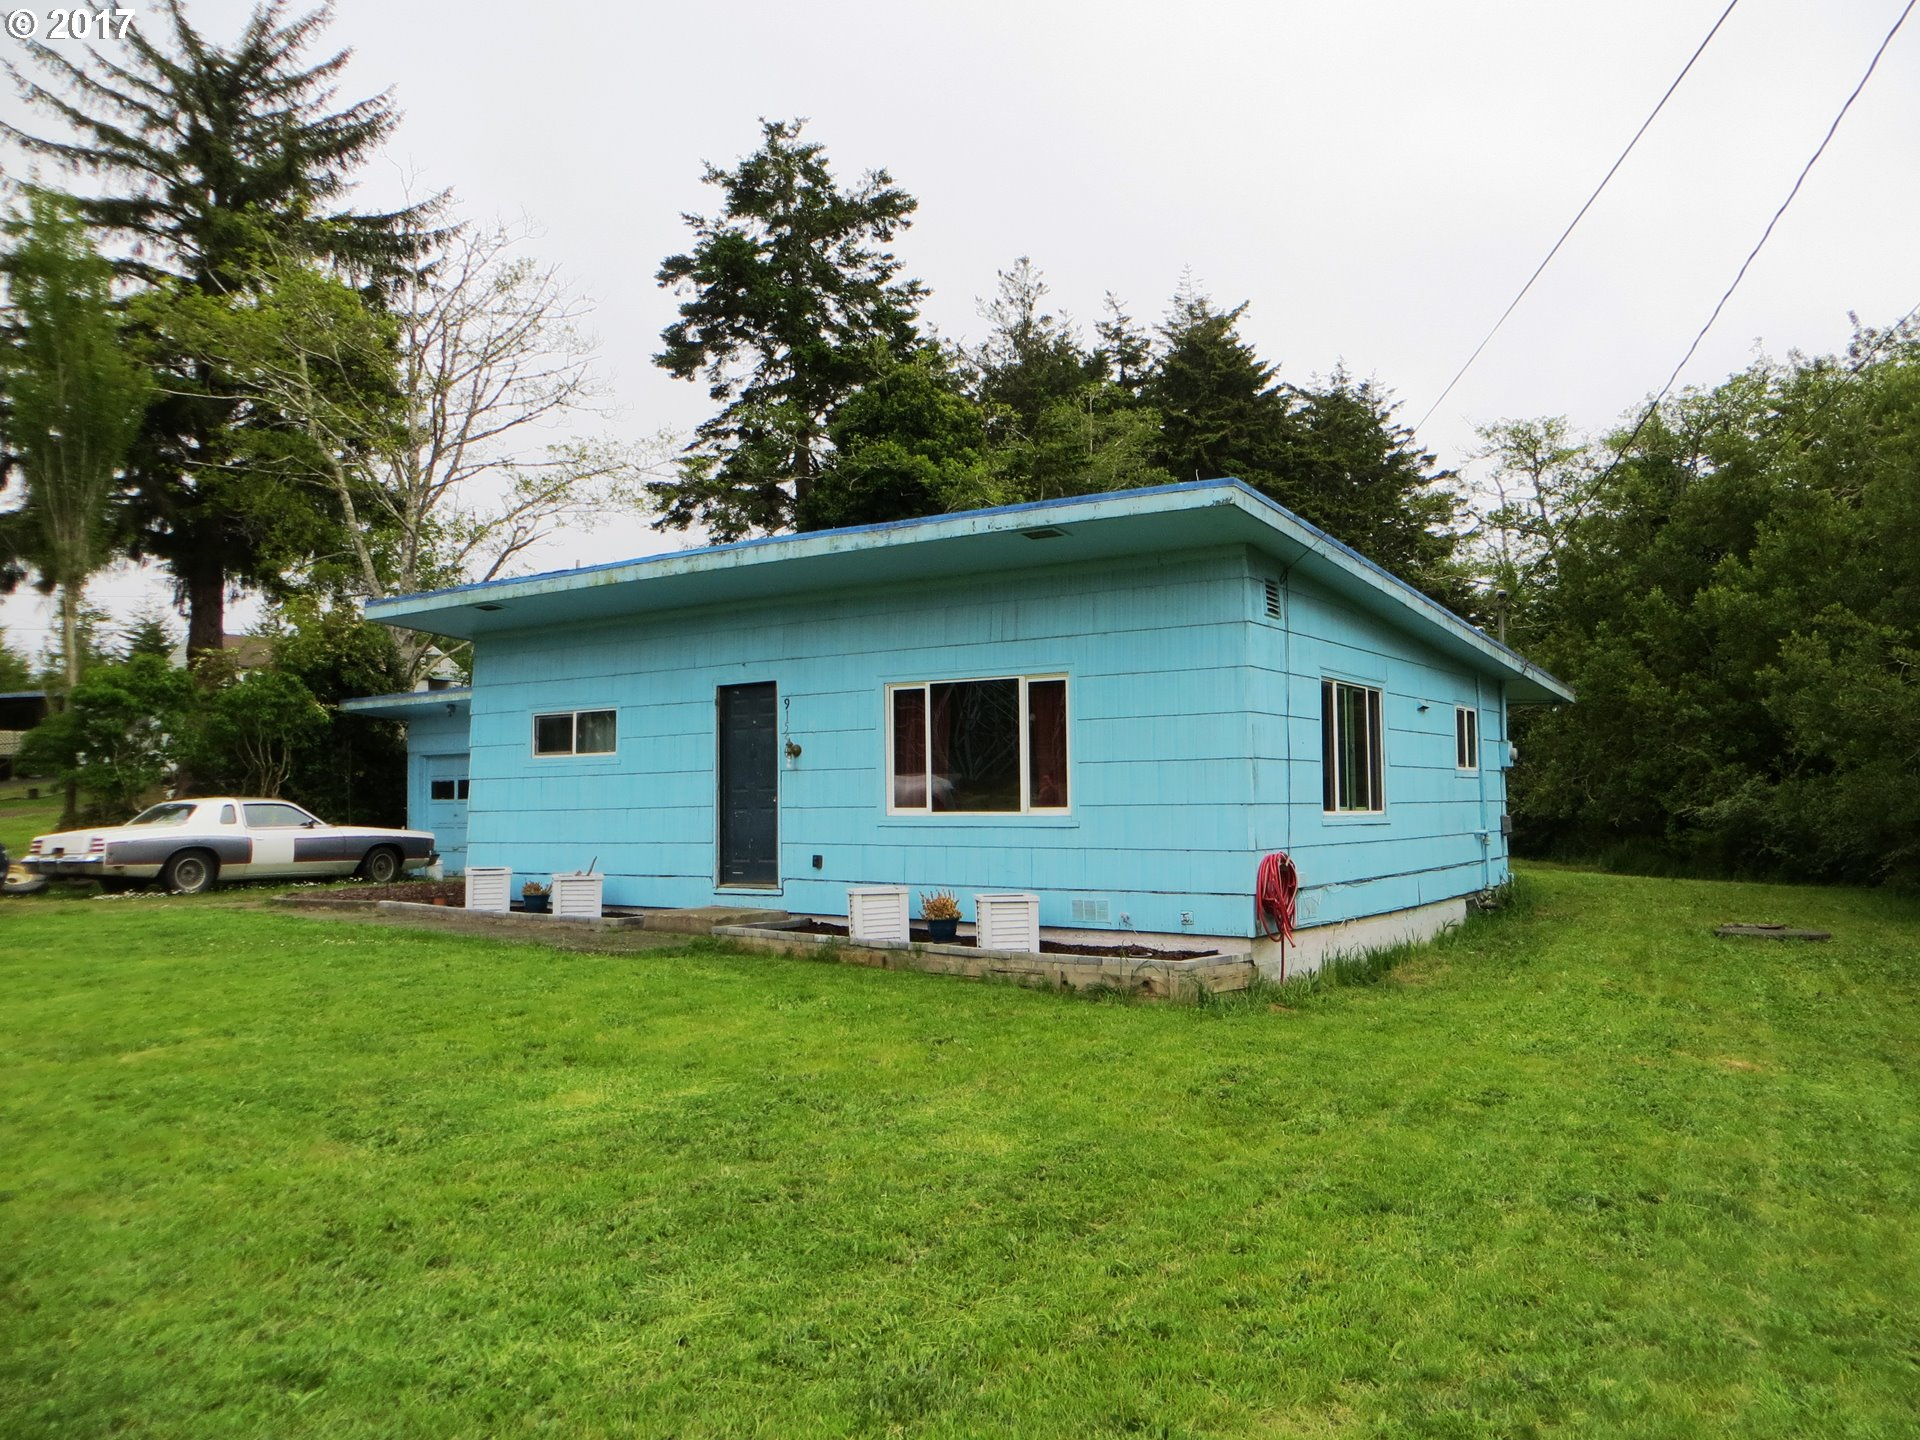 91550 SPAW LN Coos Bay, OR 97420 - MLS #: 17662686